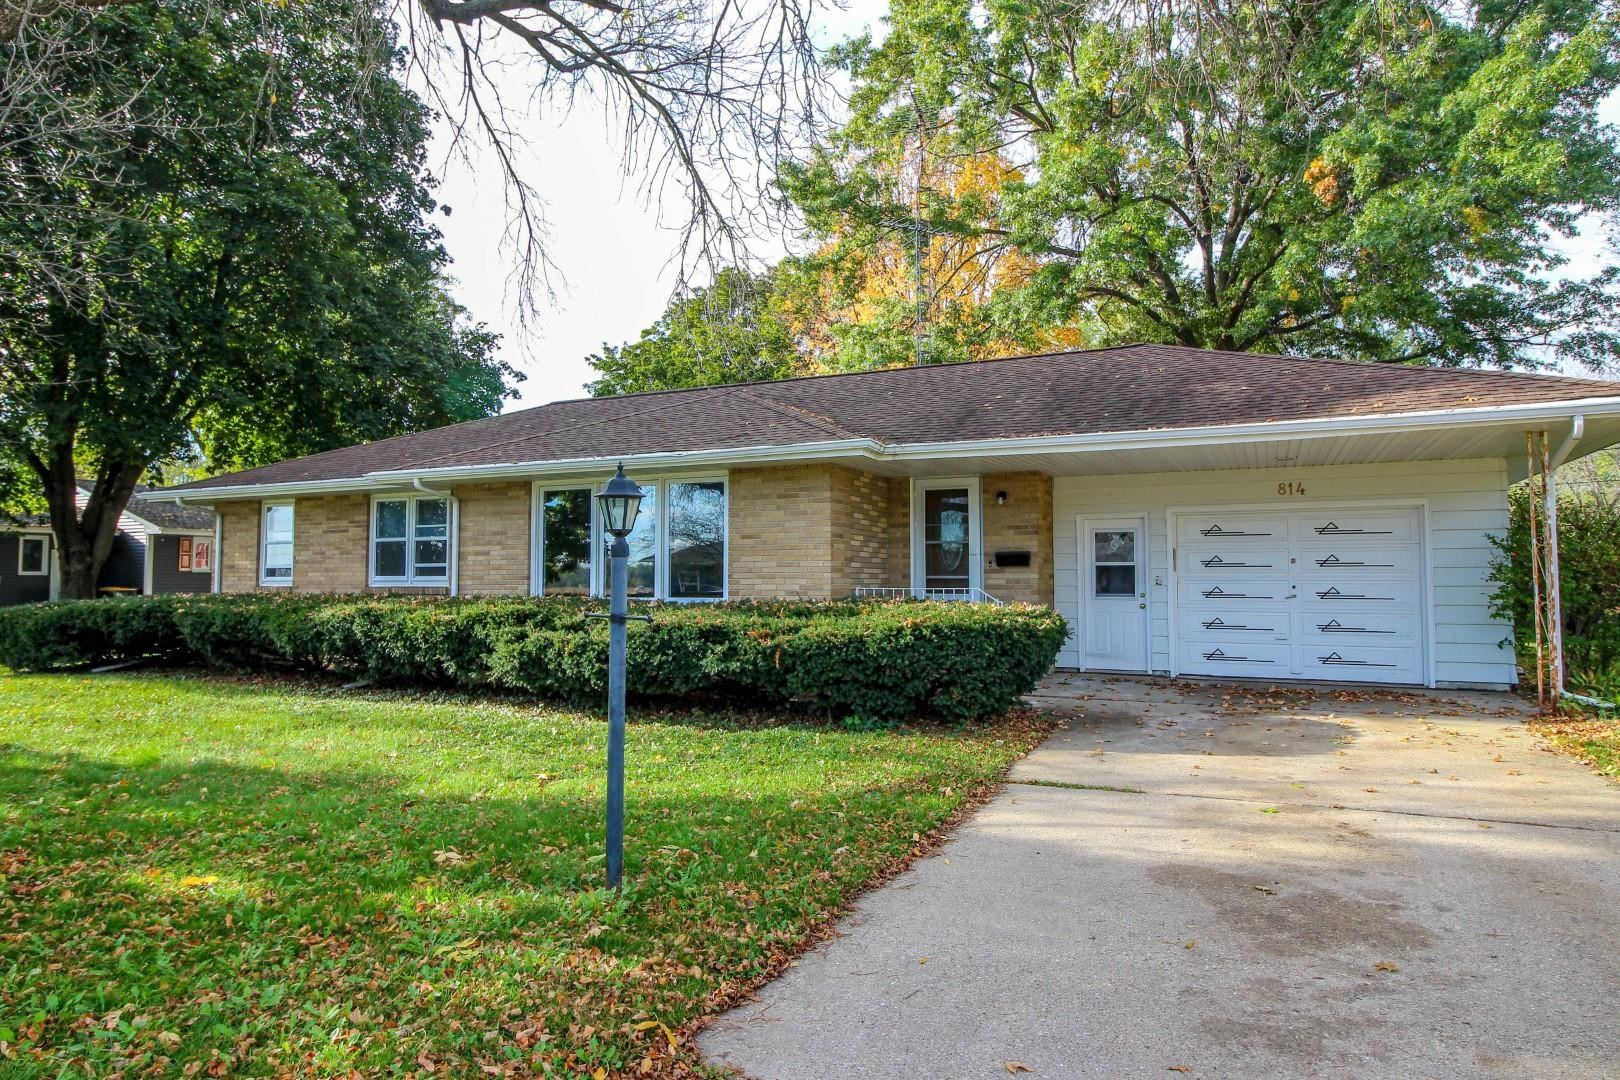 814 N 4th St, Fort Atkinson, WI 53538-1924 - #: 1922384